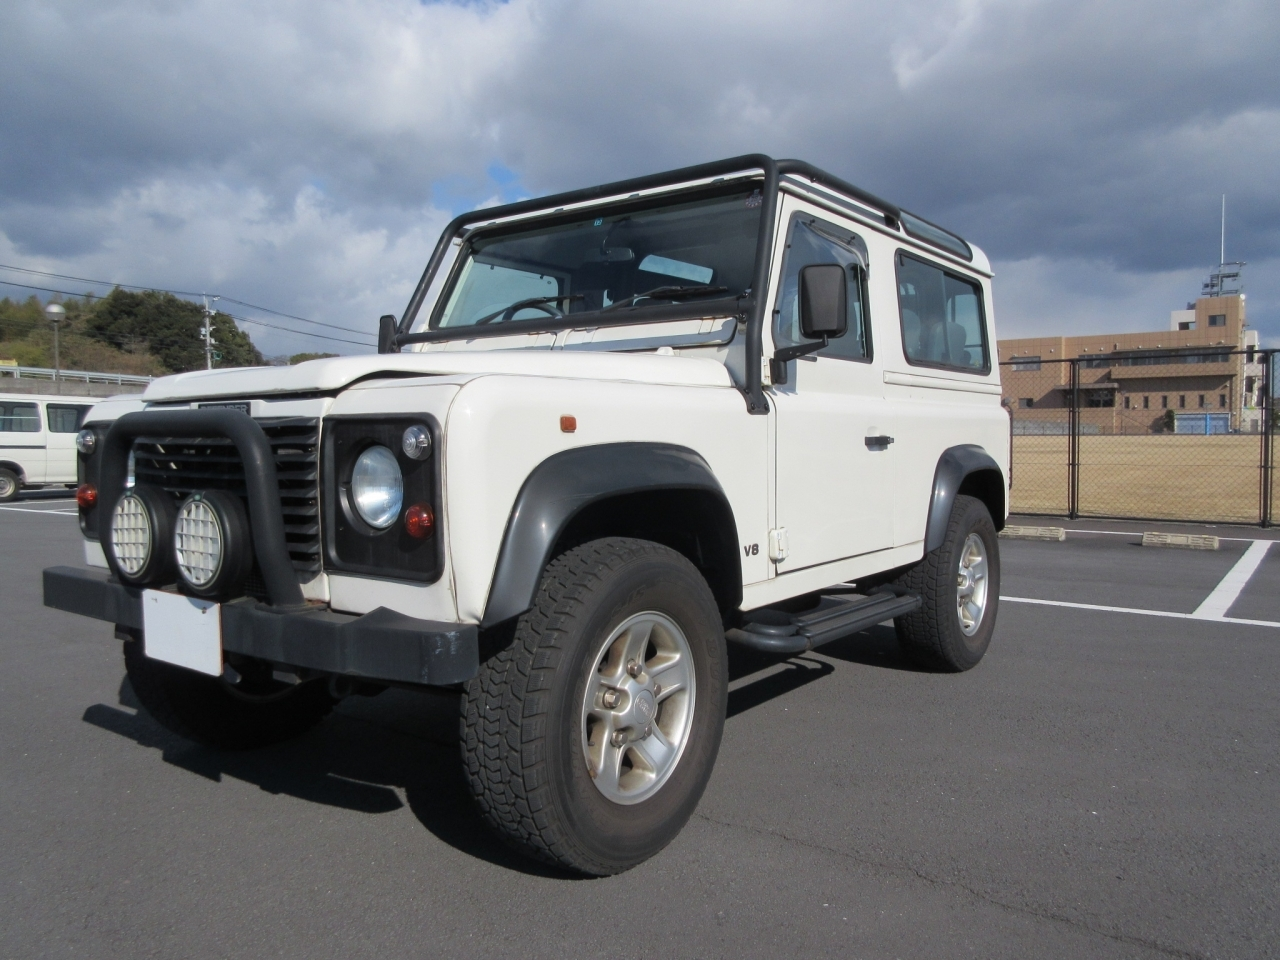 Buy used LAND ROVER DEFENDER at Japanese auctions